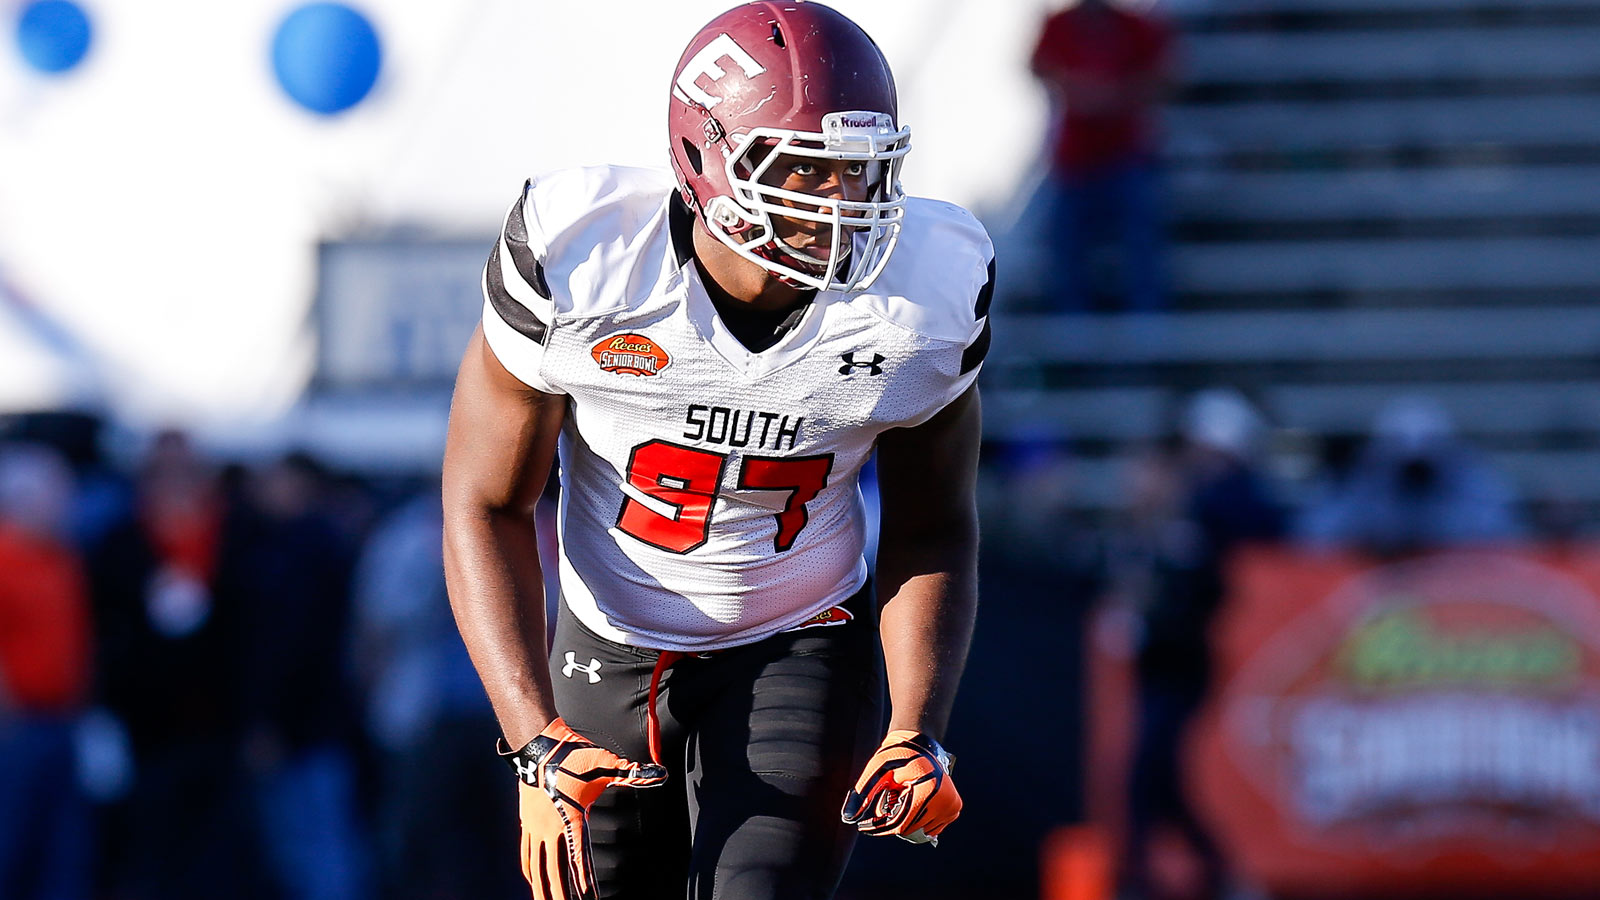 Ex-Buckeye Noah Spence tries to convince NFL his partying is in past